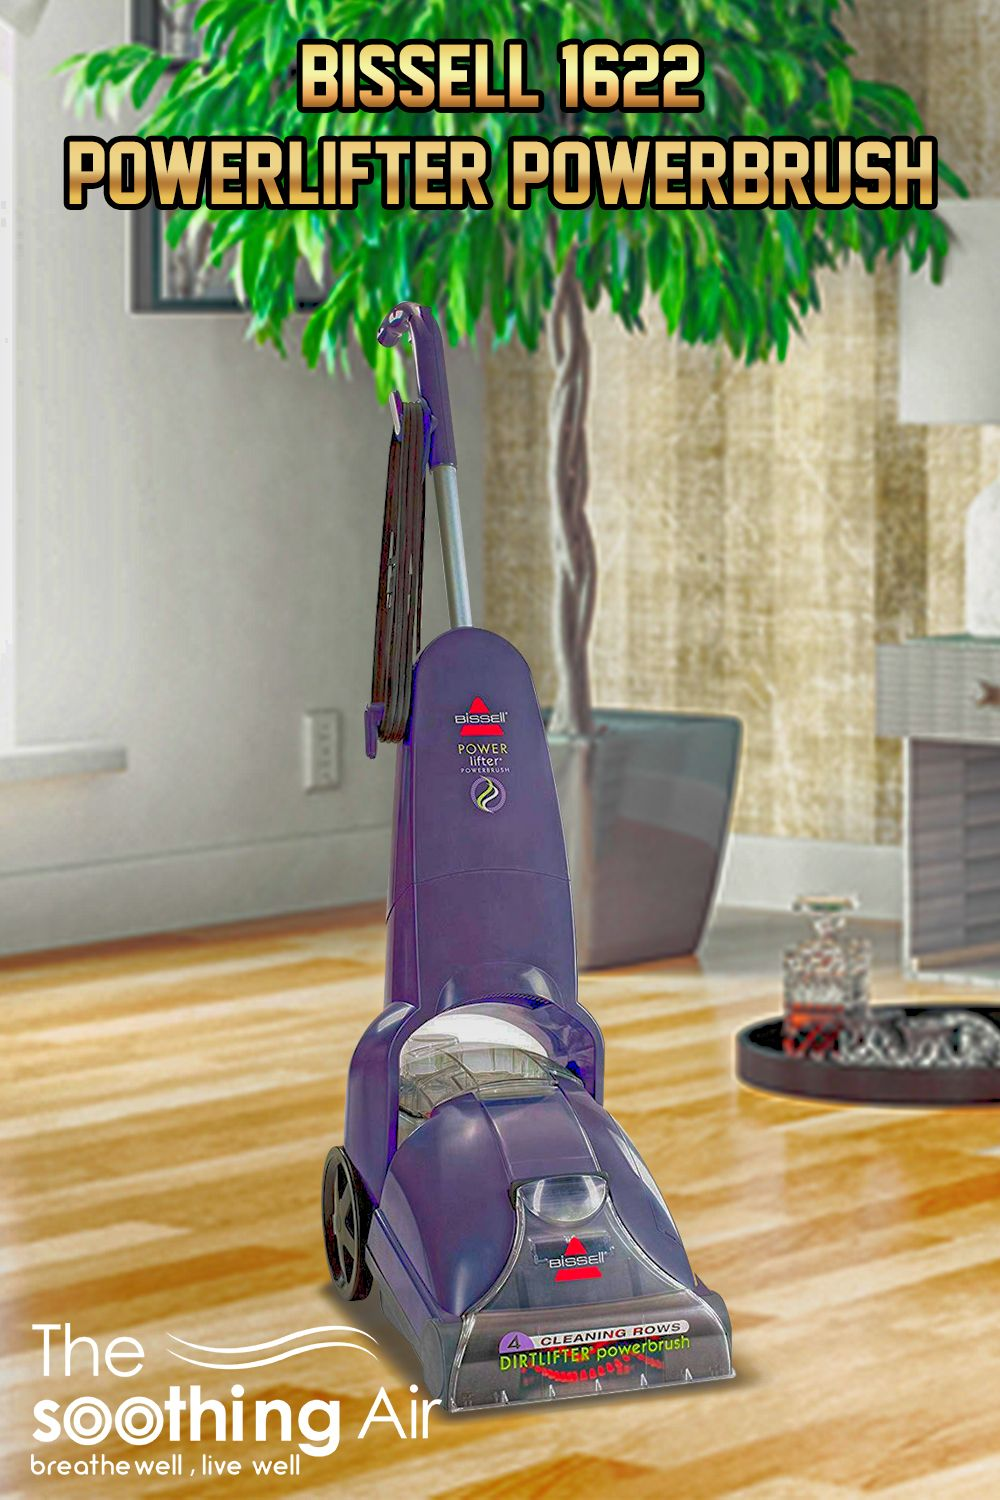 Top 10 Carpet Cleaning Machines April 2020 Reviews Buyers Guide Carpet Cleaning Machines Carpet Commercial Carpet Cleaning